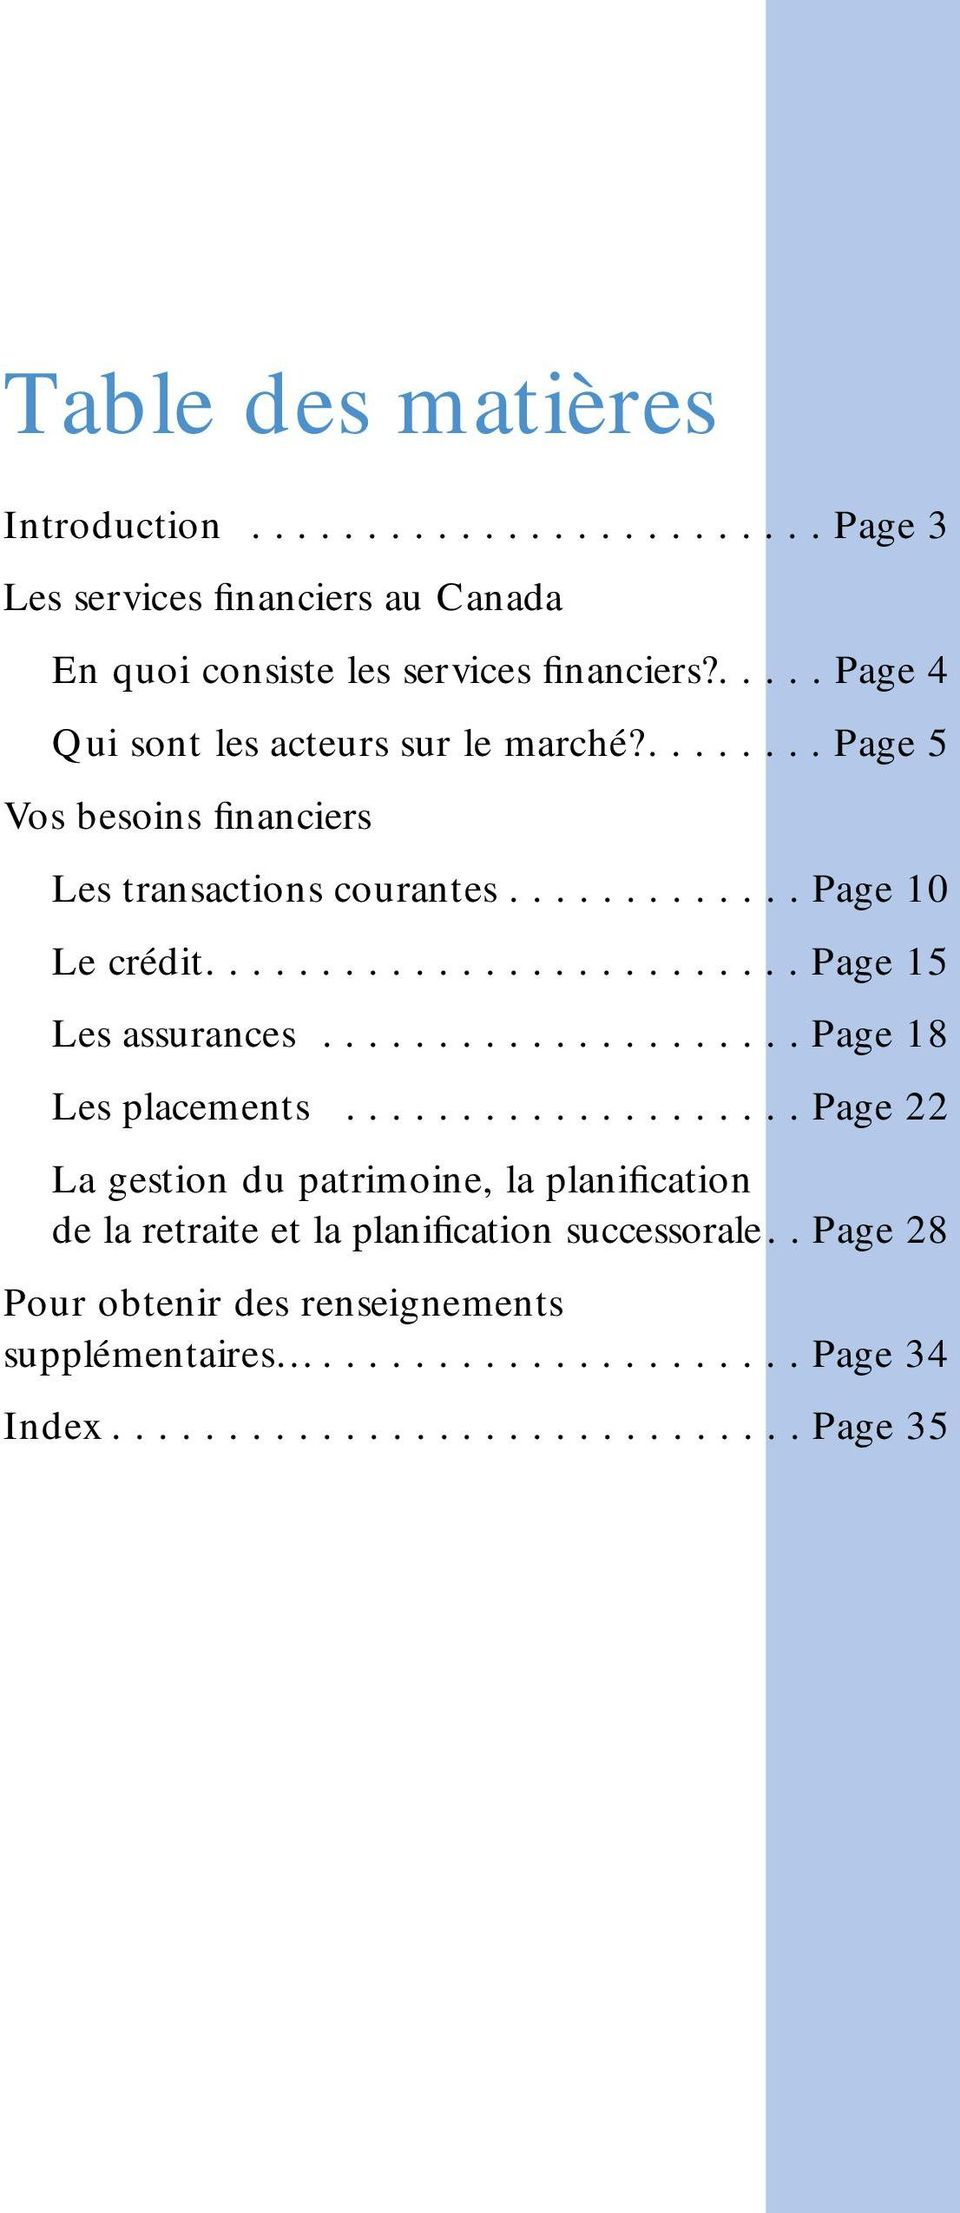 ......................... Page 15 Les assurances..................... Page 18 Les placements.